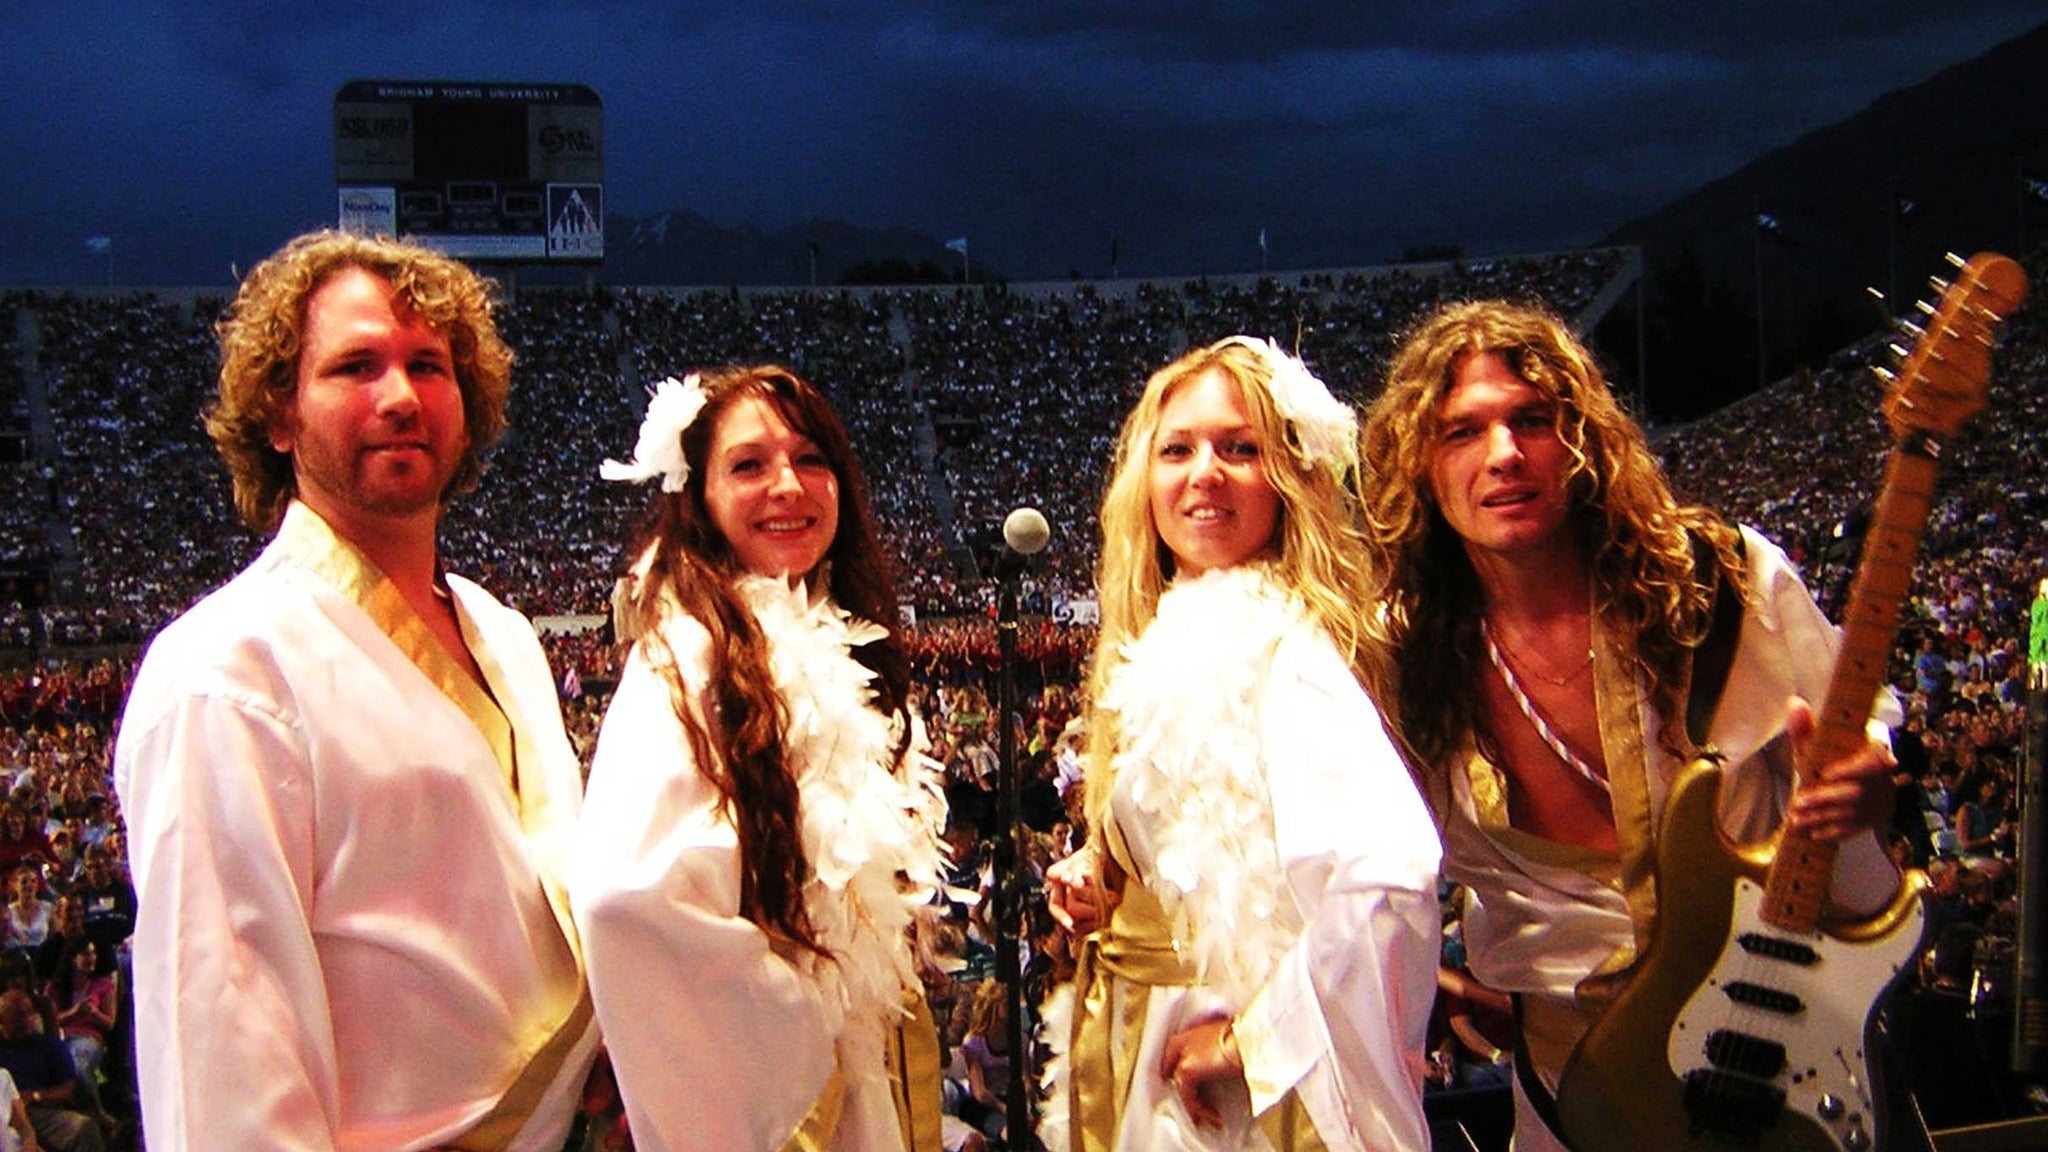 Almost AHBA-The World's #1 Tribute to ABBA